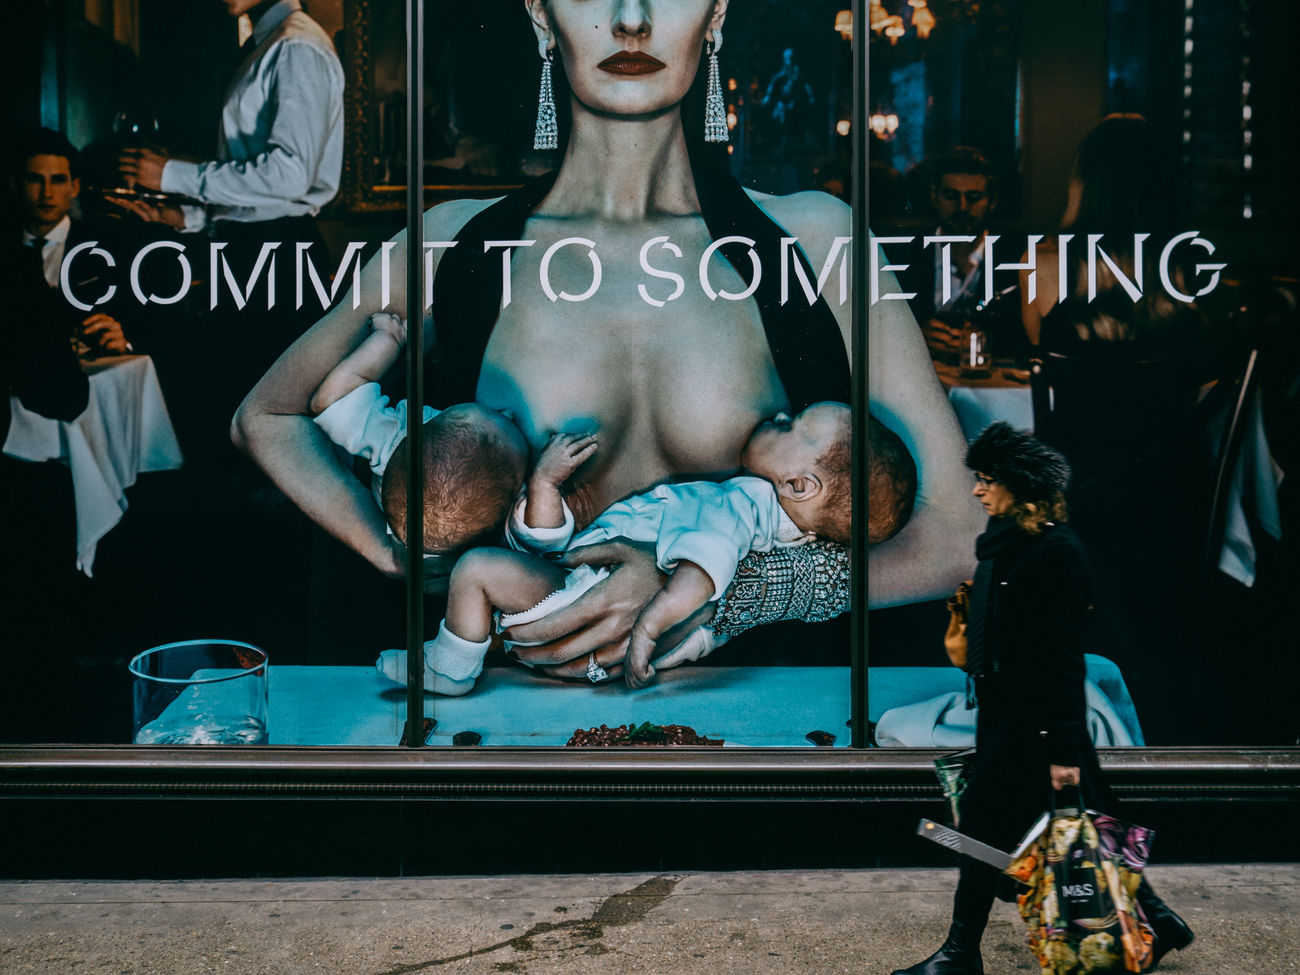 Just in case if someone lucks motivation in the New Year. Streetphotography Colors London Lifestyle London Maxgor Street Rawstreets People Olympus Pen-f City Life Prime Lens Olympuspenef Maxgor.com Street Photography Candid Photo 35mm Lifestyles Streetphotography Knightsbridge Kensington